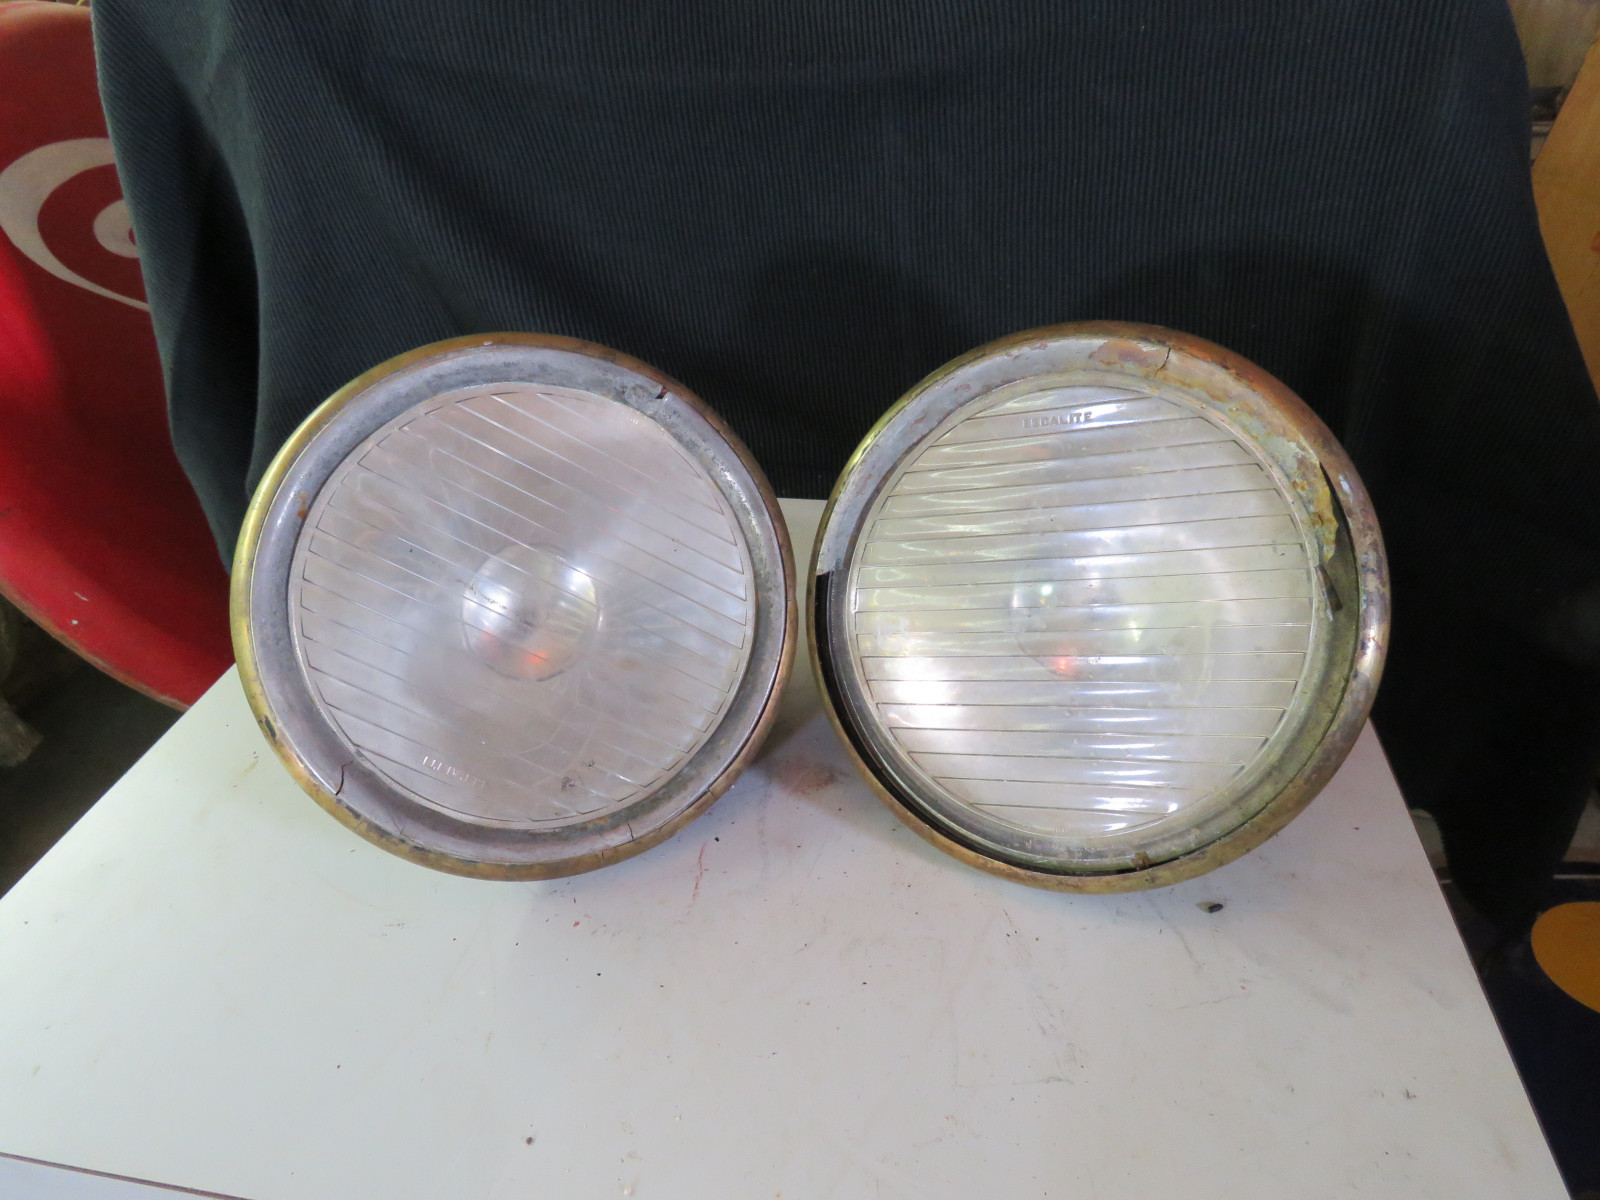 Pair of Brass Headlights - Image 1